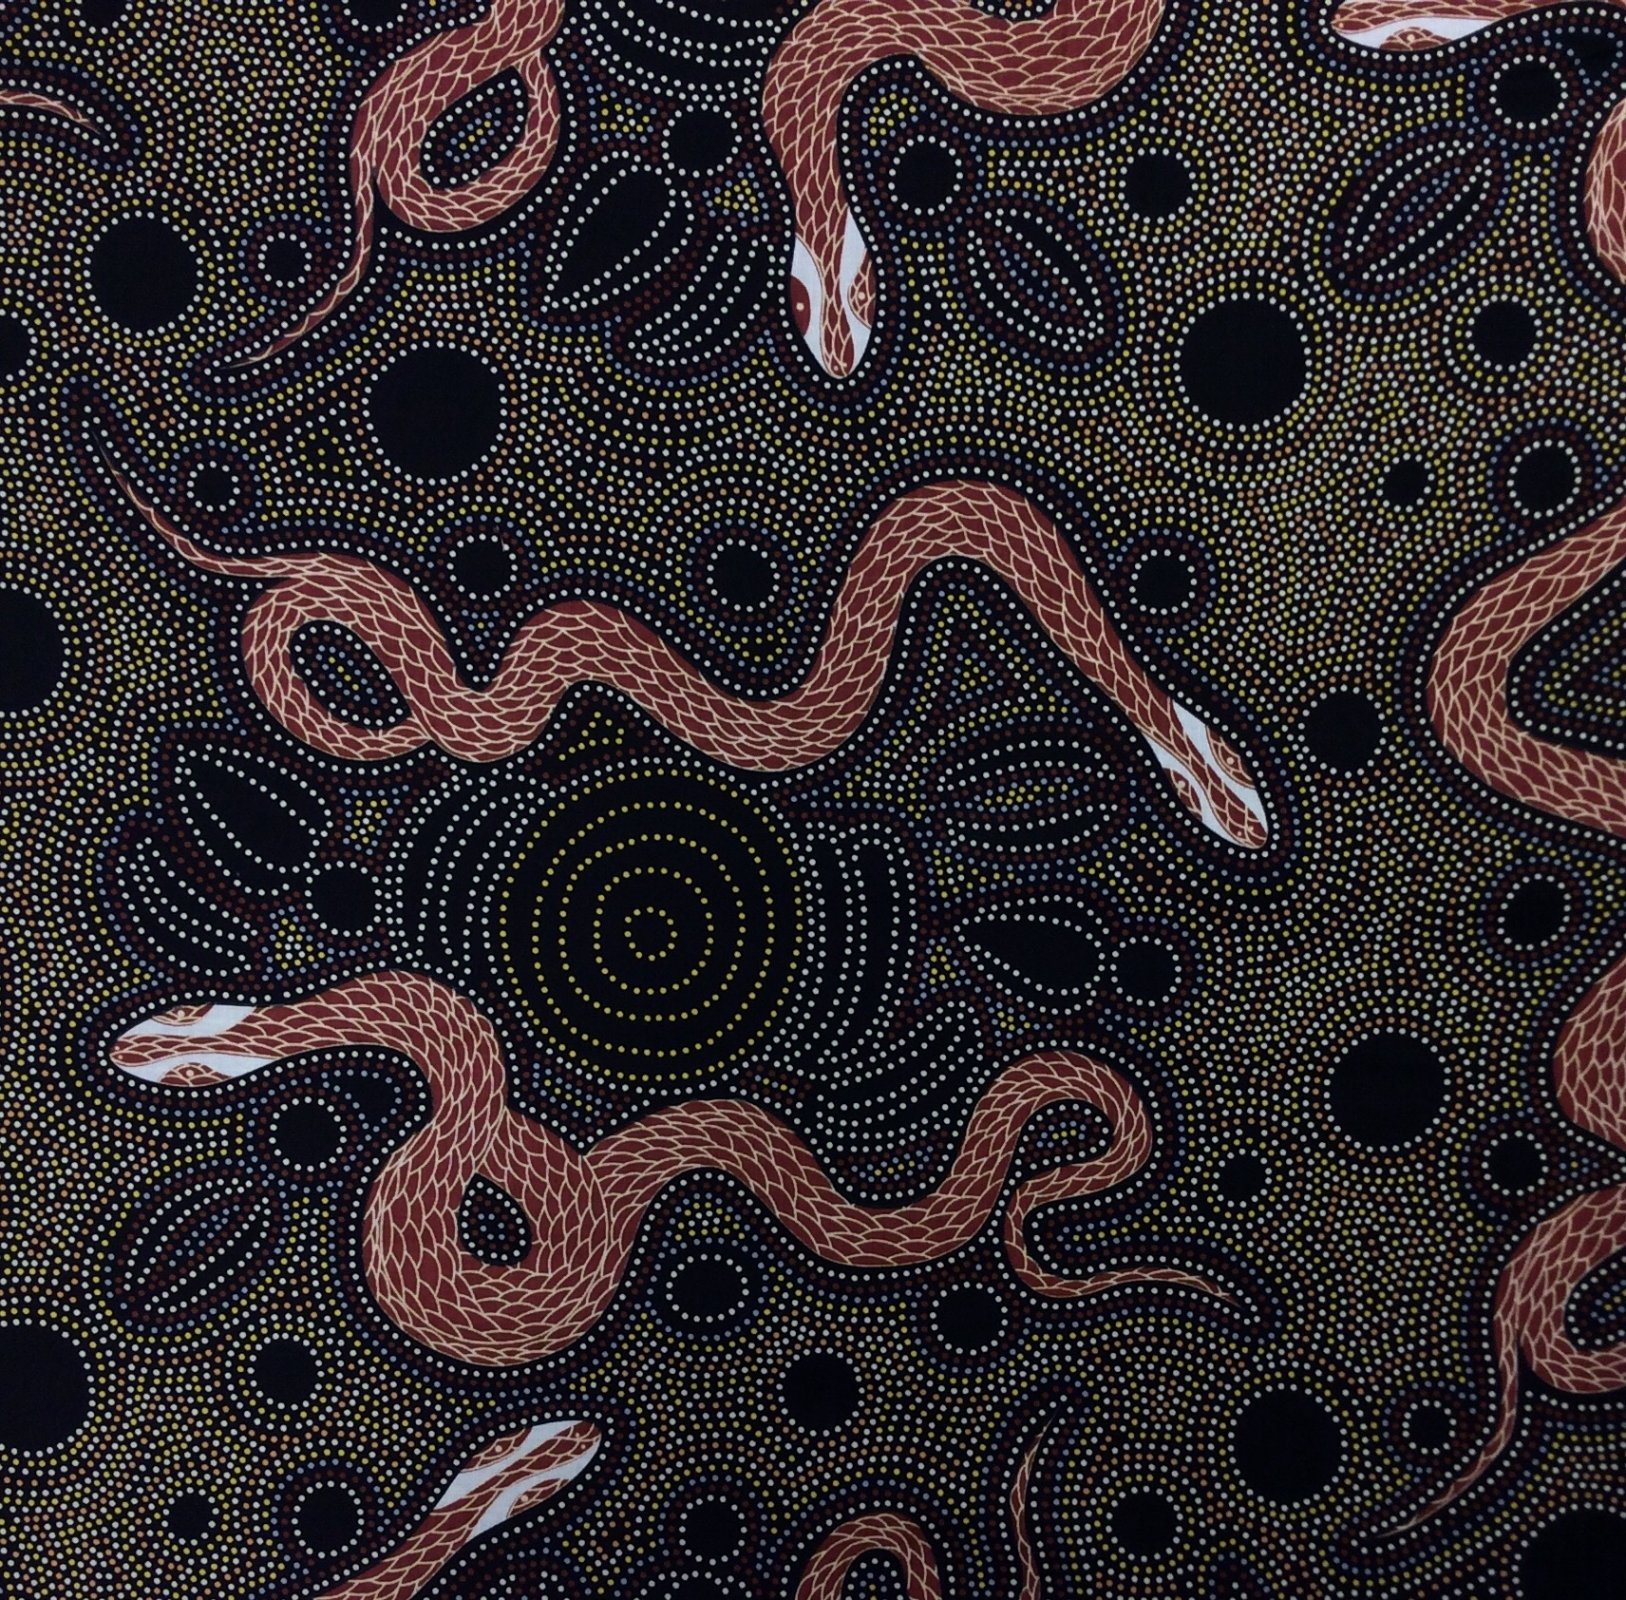 Aborigine Australian Snakes & Emu Eggs Dots Aborigine Cotton Quilt Fabric MS20